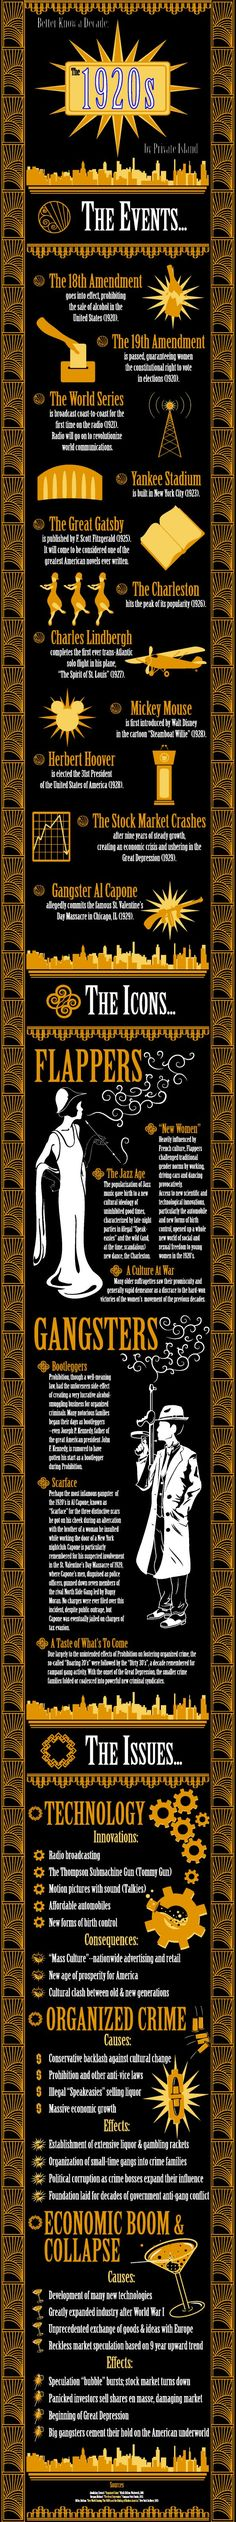 """Great infographic with even more interest now due to the the debut of """"The Great Gatsby"""" movie"""